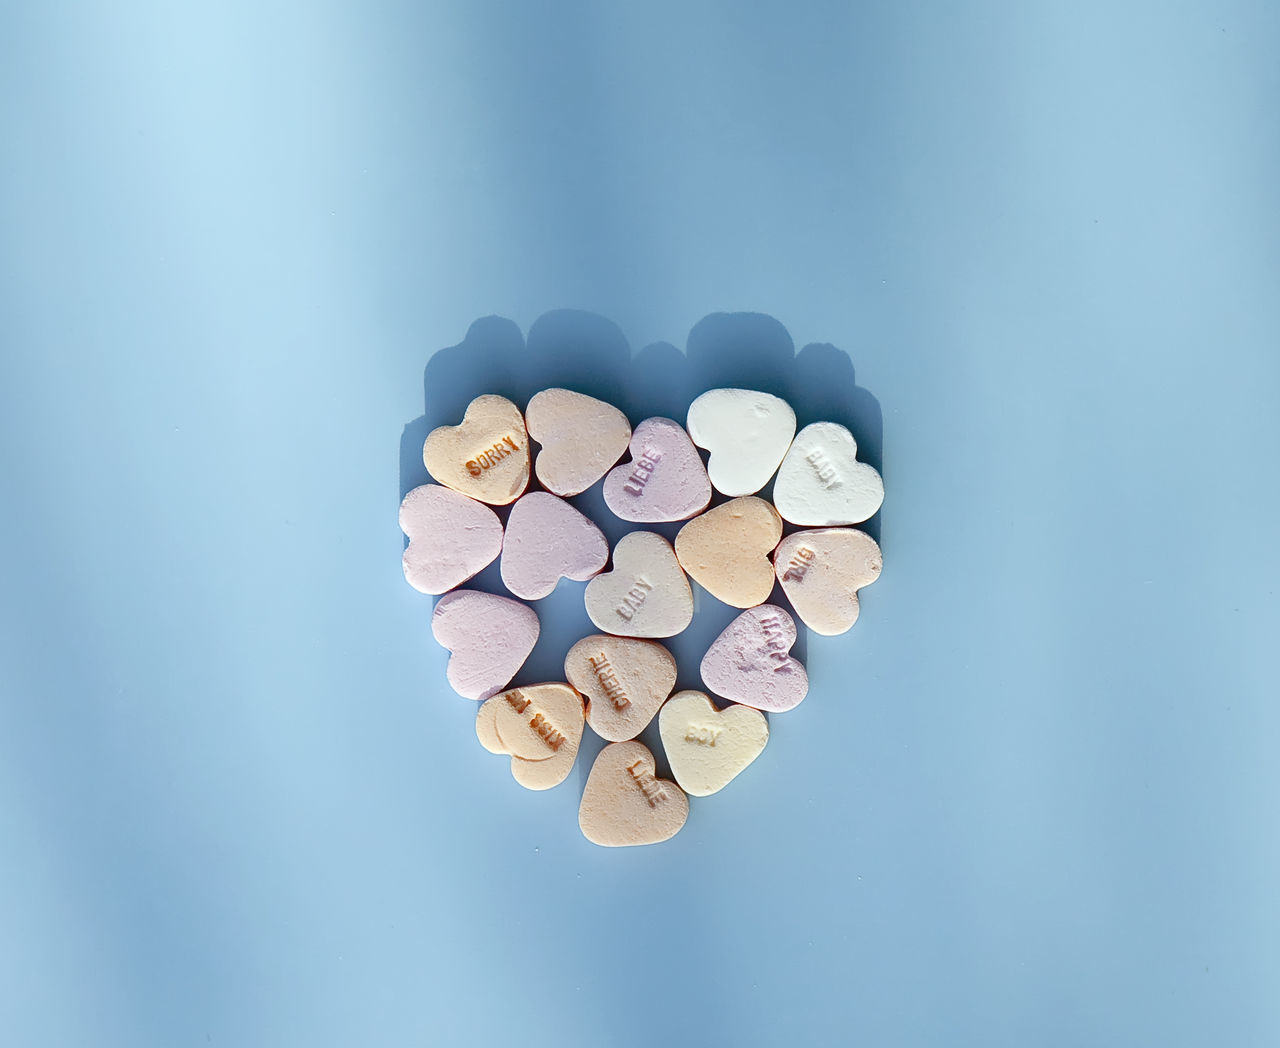 Candy Candy Heart Day Heart Heart Shape Love Love ♥ No People Pastel Pastel Power